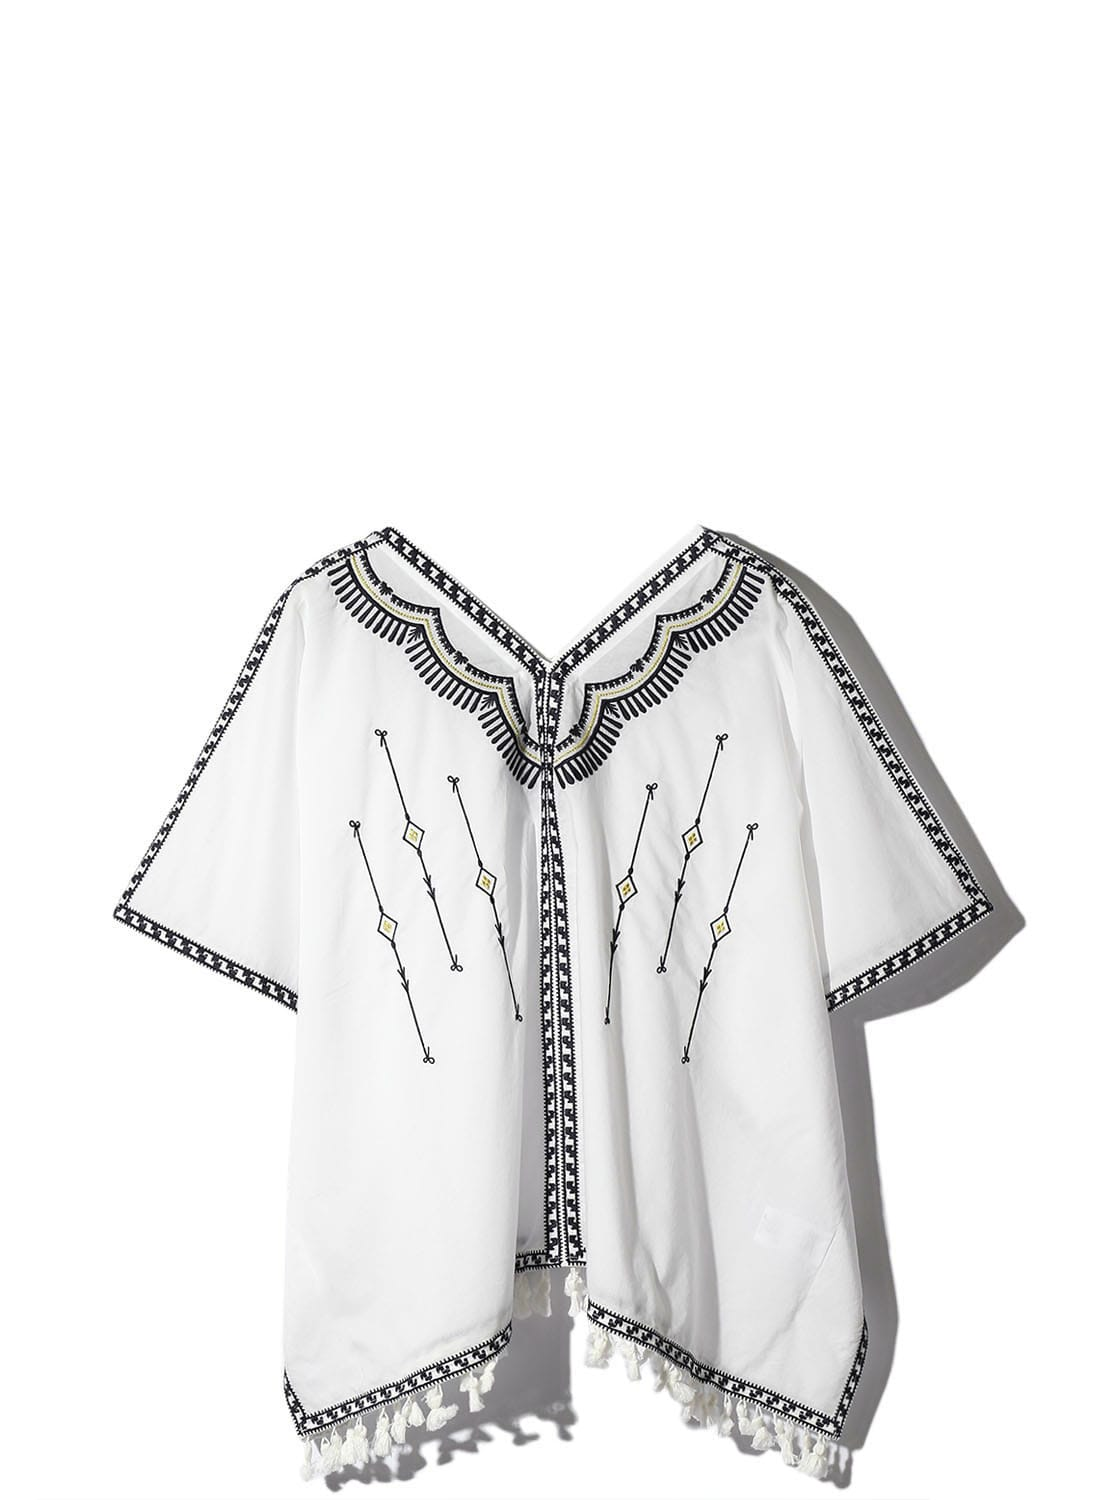 【日本限定】 EMBROIDERY BLOUSE